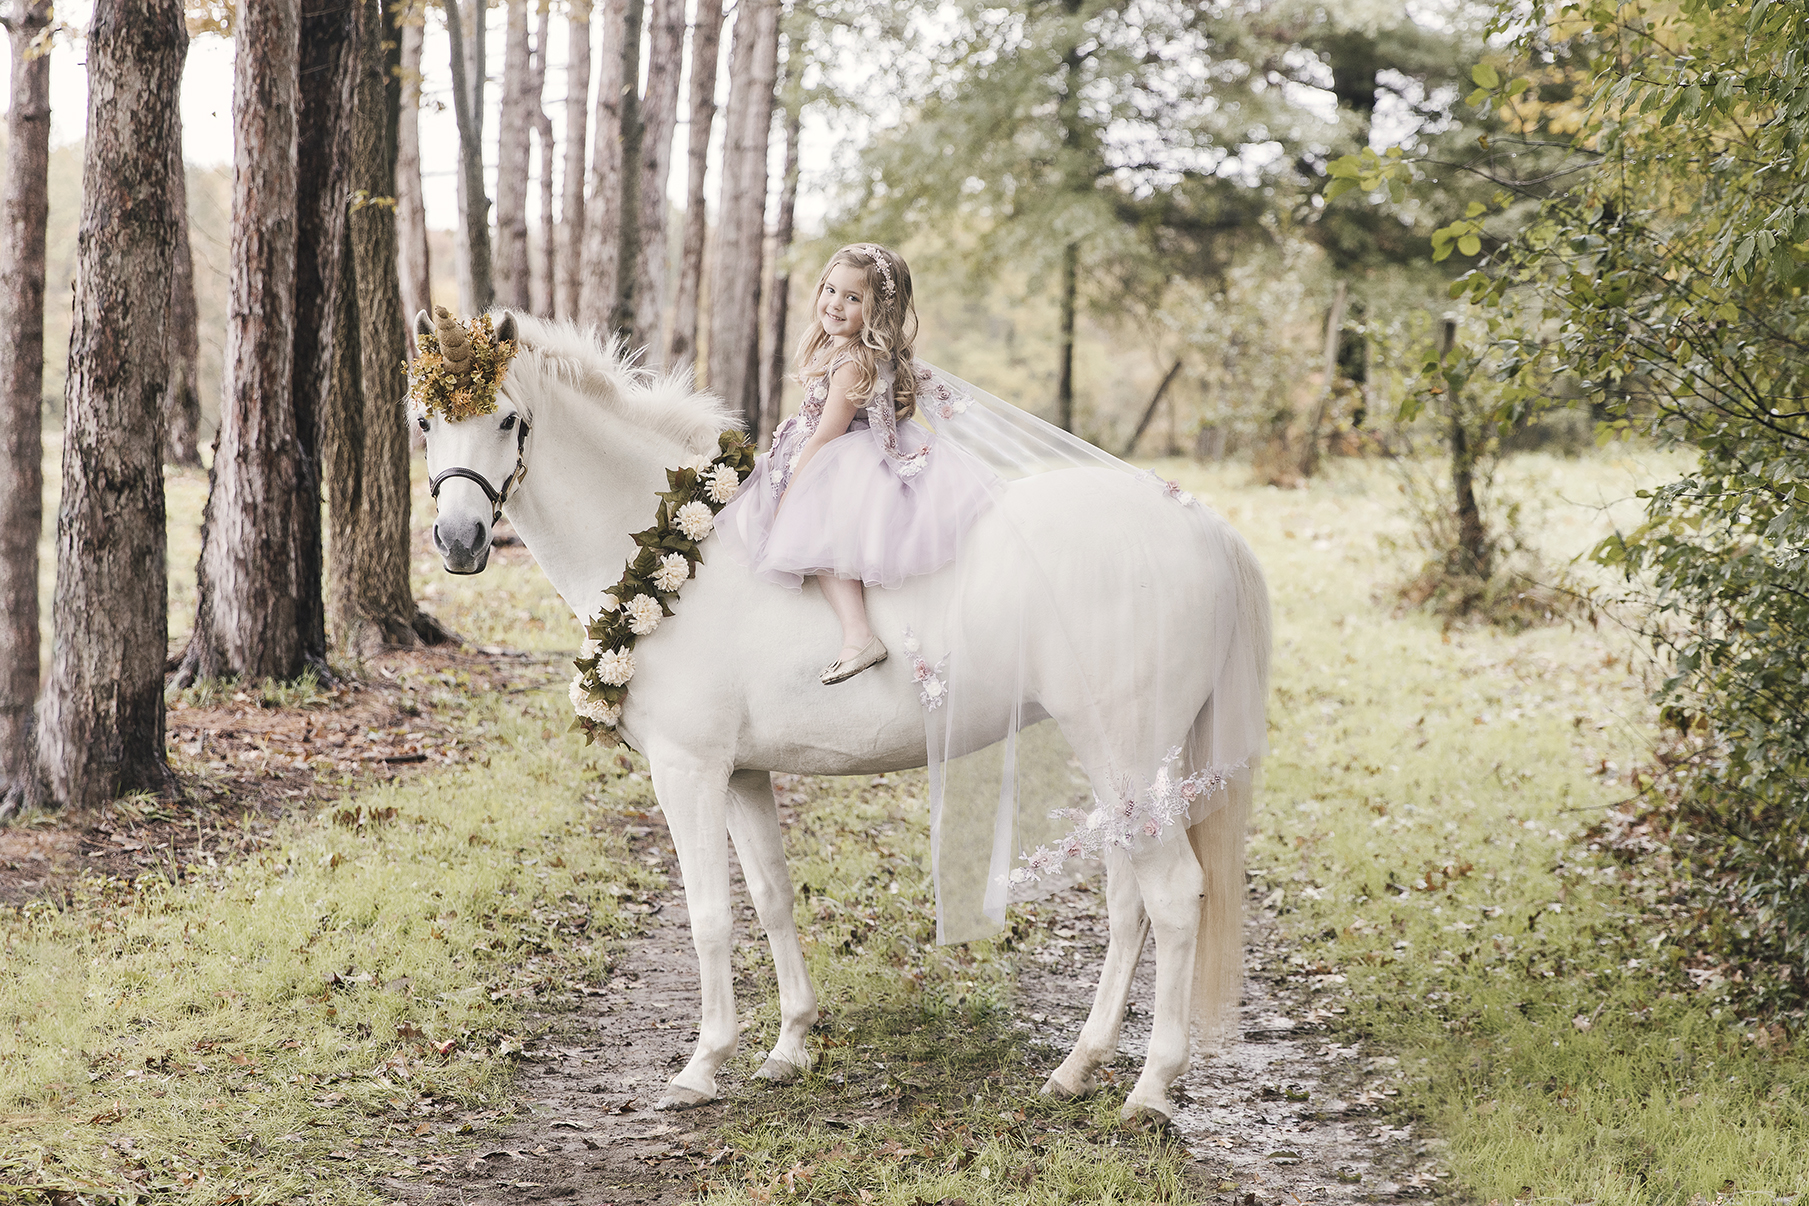 photos-with-a-unicorn-unicorn-session-in-Canfield-OH- with-child-and-family-photographers-christie-leigh-photo-and-kirsten-pesa-photography.jpg